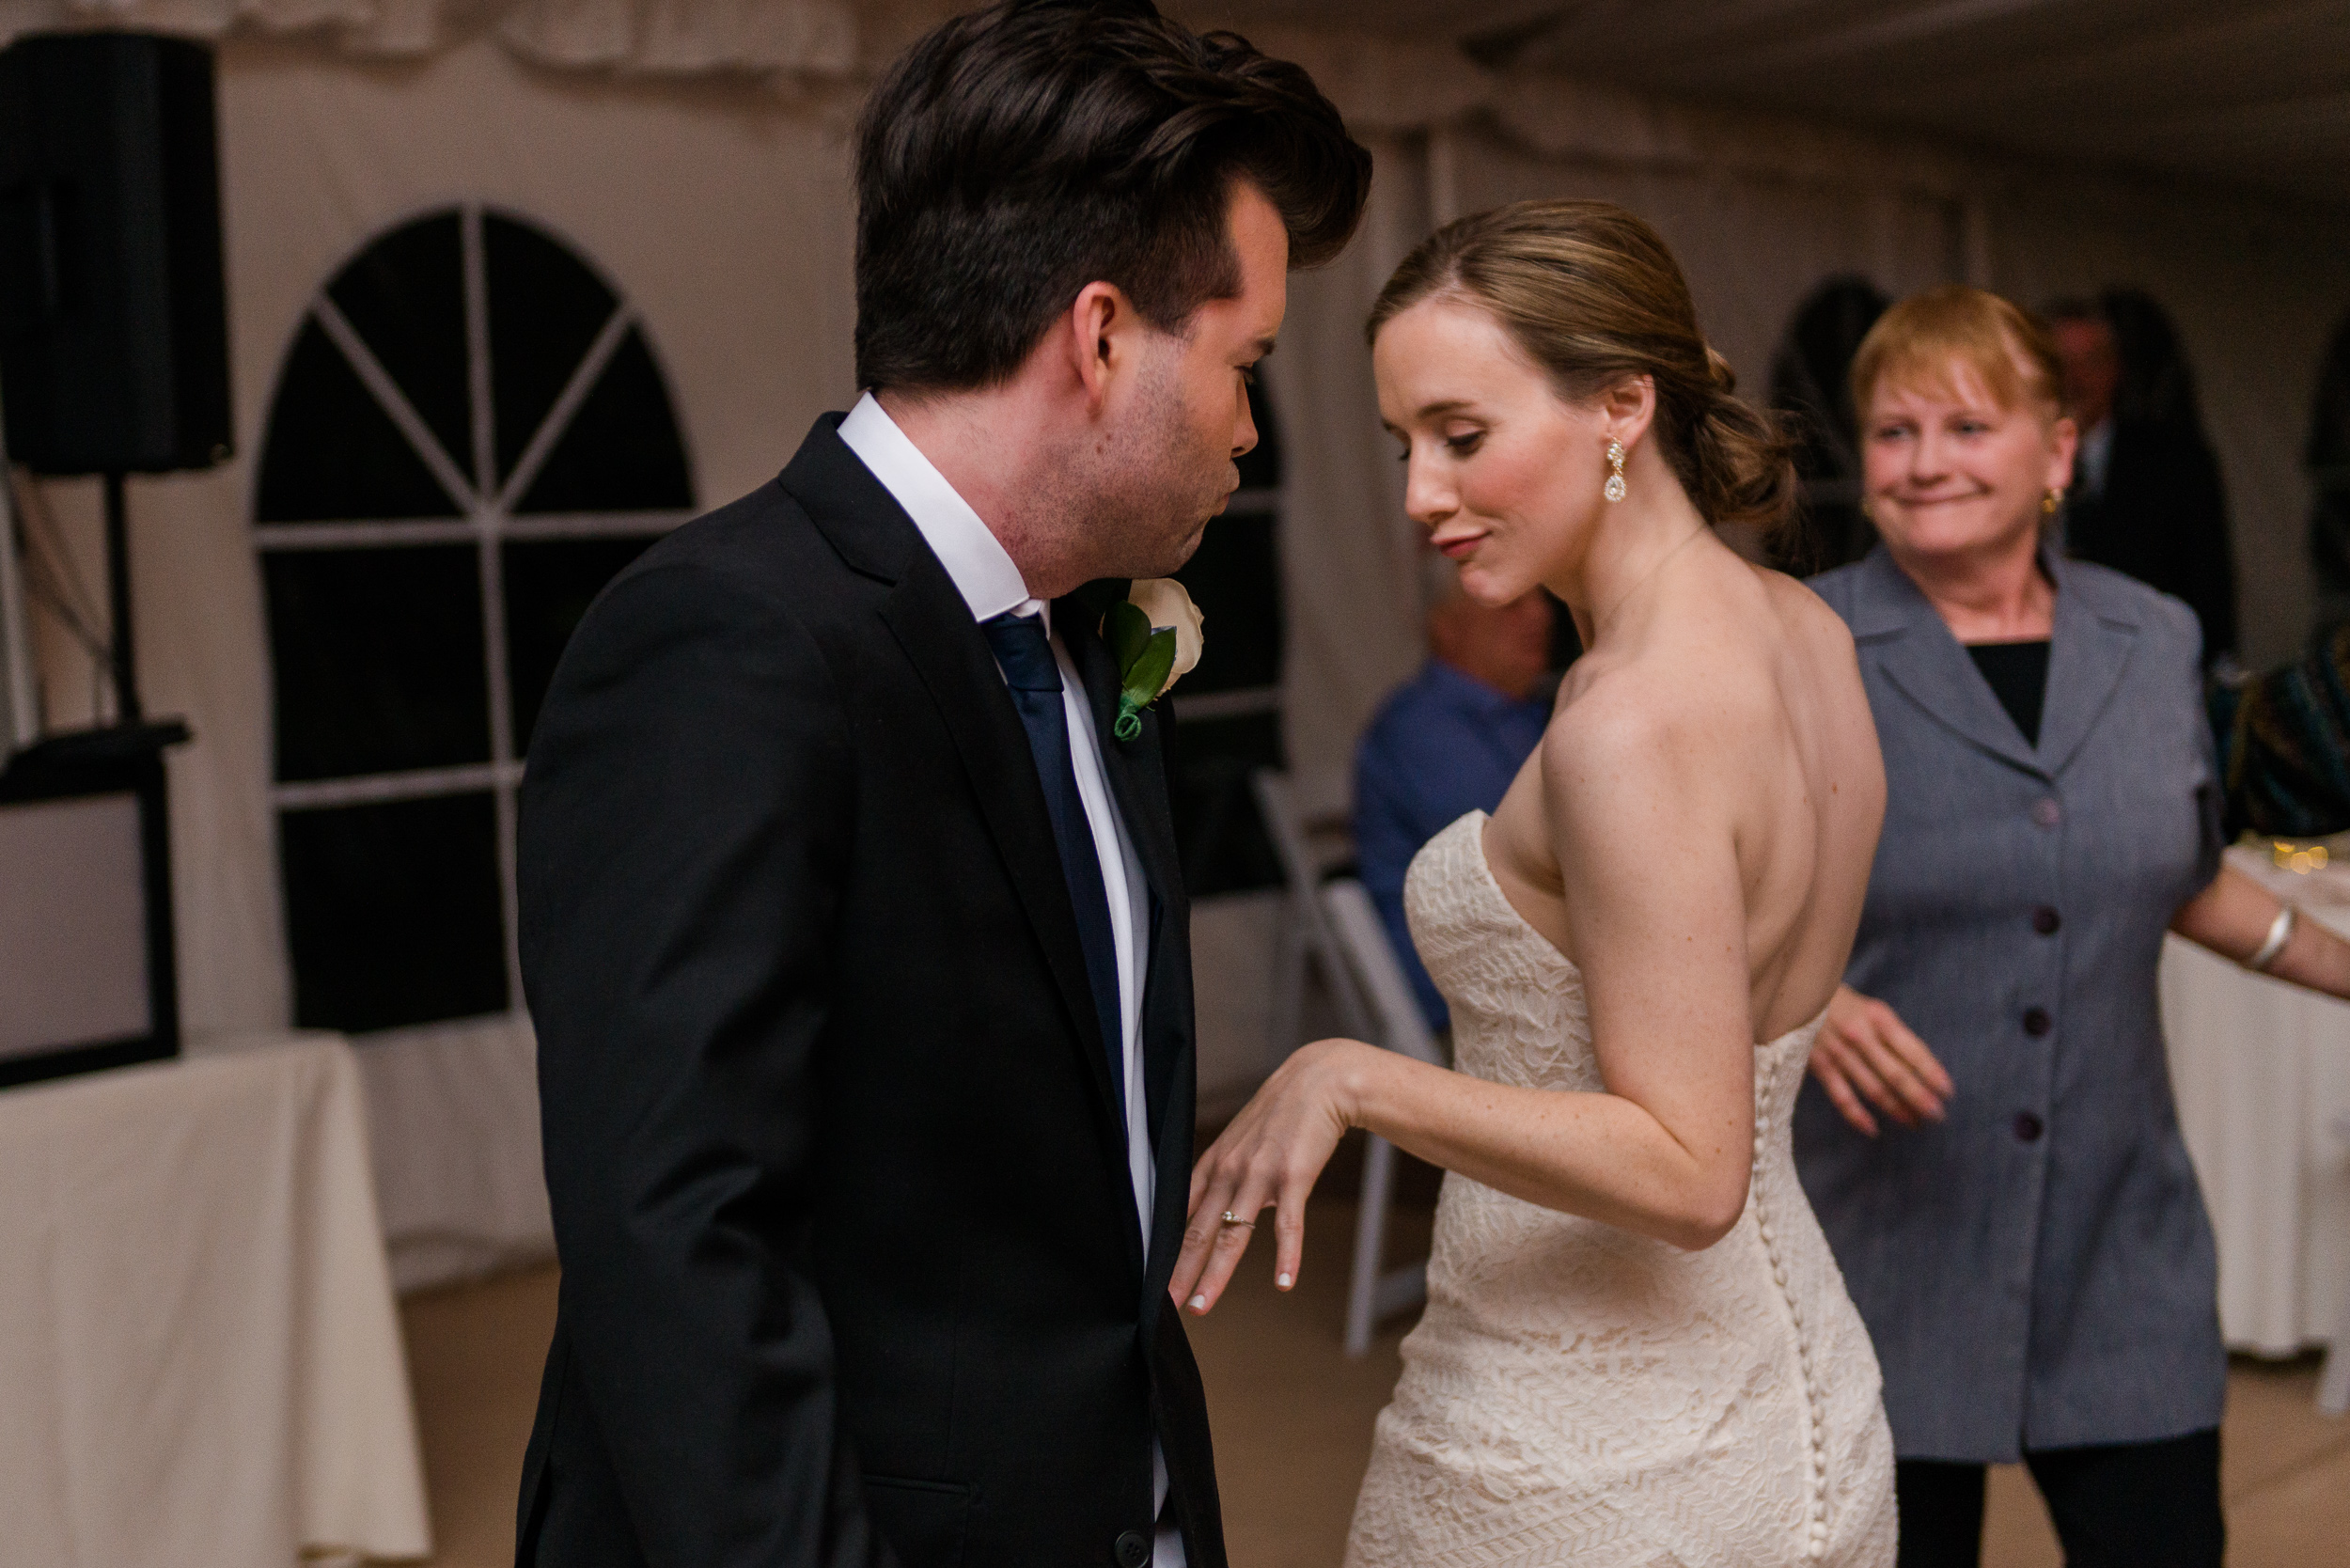 The bride and groom have fun dancing together during their tented reception at Oatlands Historic House and Gardens in Leesburg, Virginia